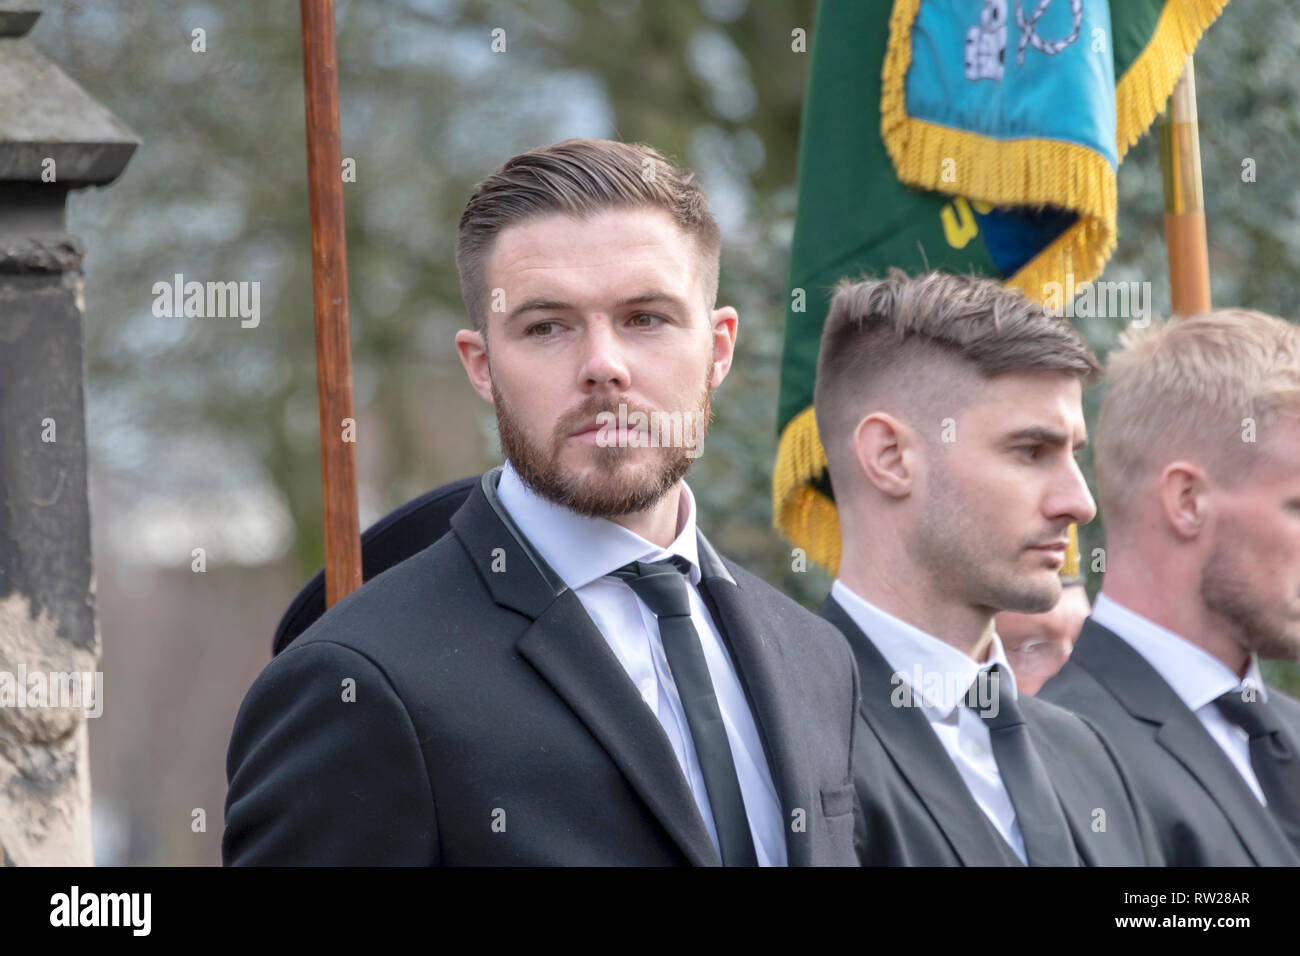 Stoke-on-Trent, Staffordshire, UK. 4th Mar 2019. Photos from the funeral service of England and Stoke City footballing legend Gordon Banks outside Stoke Minster in Stoke-on-Trent Credit: JONATHAN AYRES/Alamy Live News - Stock Image